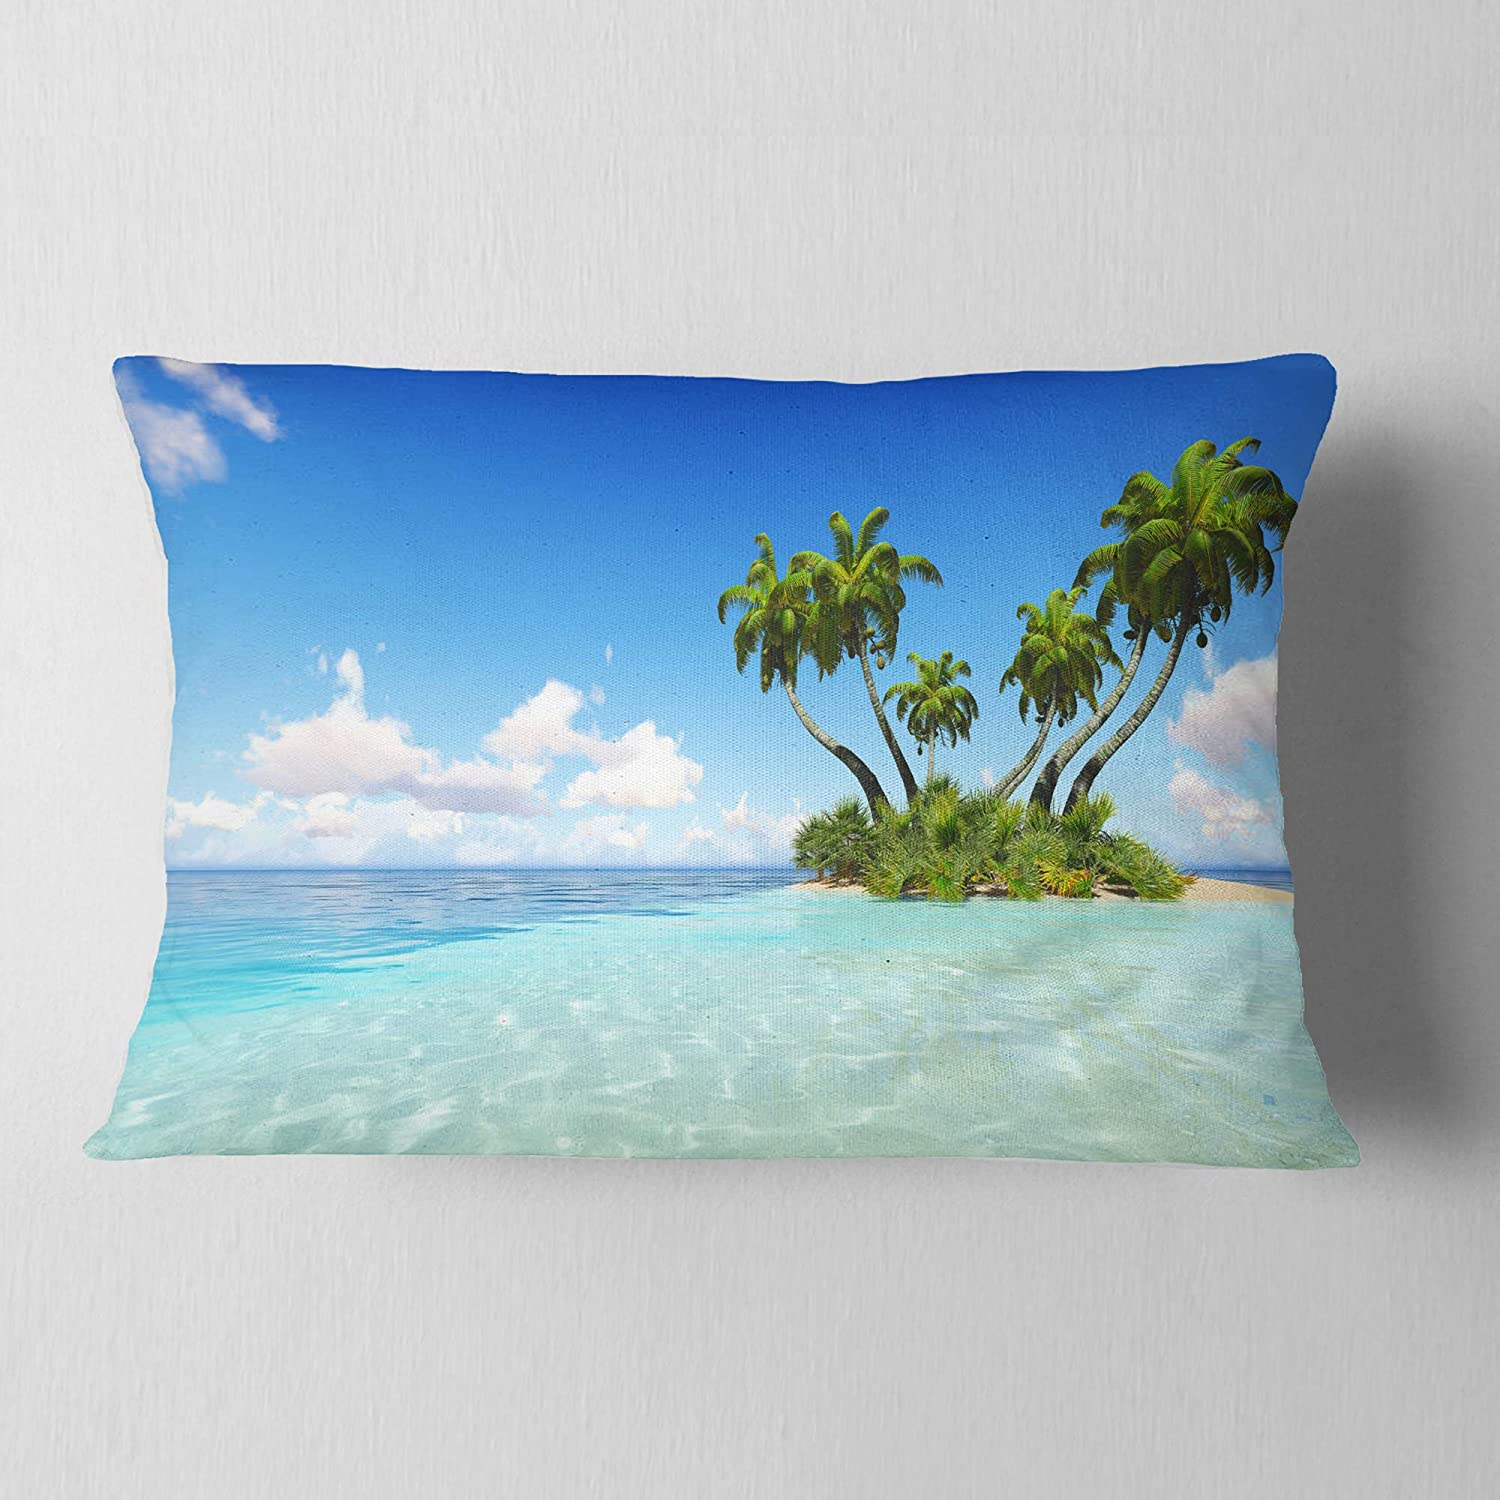 Insert Printed On Both Side in Designart CU9894-12-20 Corals Island Under Blue Sky Seascape Lumbar Cushion Cover for Living Room x 20 in Sofa Throw Pillow 12 in